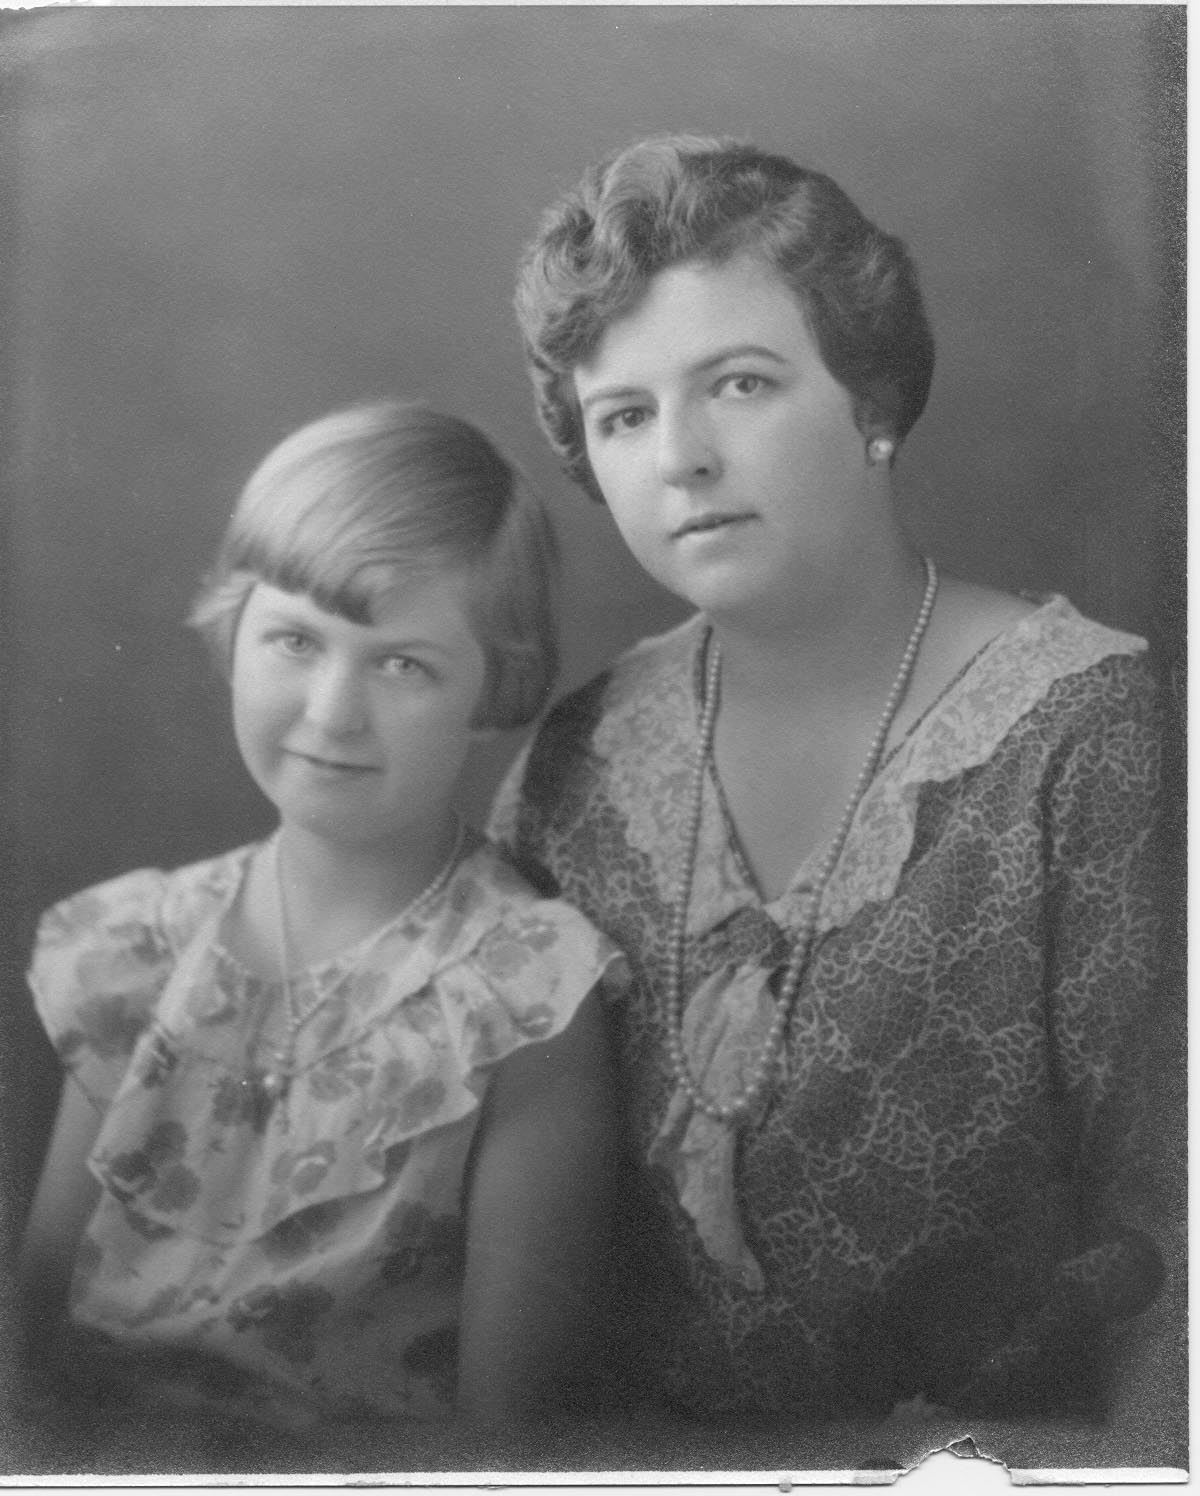 (Not So) Wordless Wednesday - Post 267: My Mother and Grandmother in 1930